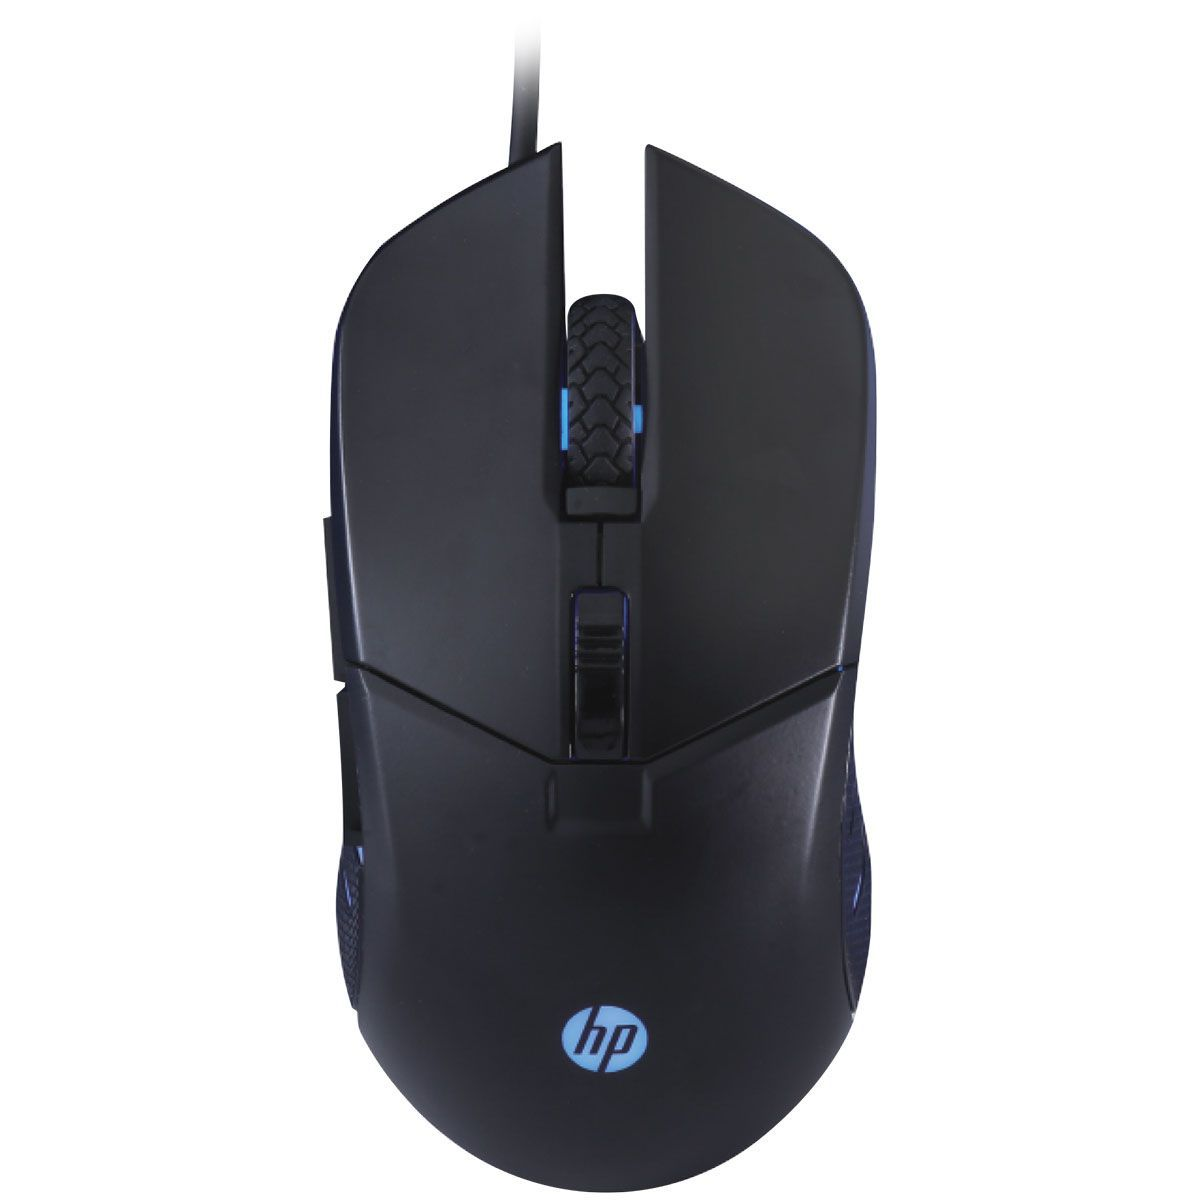 Mouse USB Gamer HP G260 800/1200/1600/2400dpi Preto